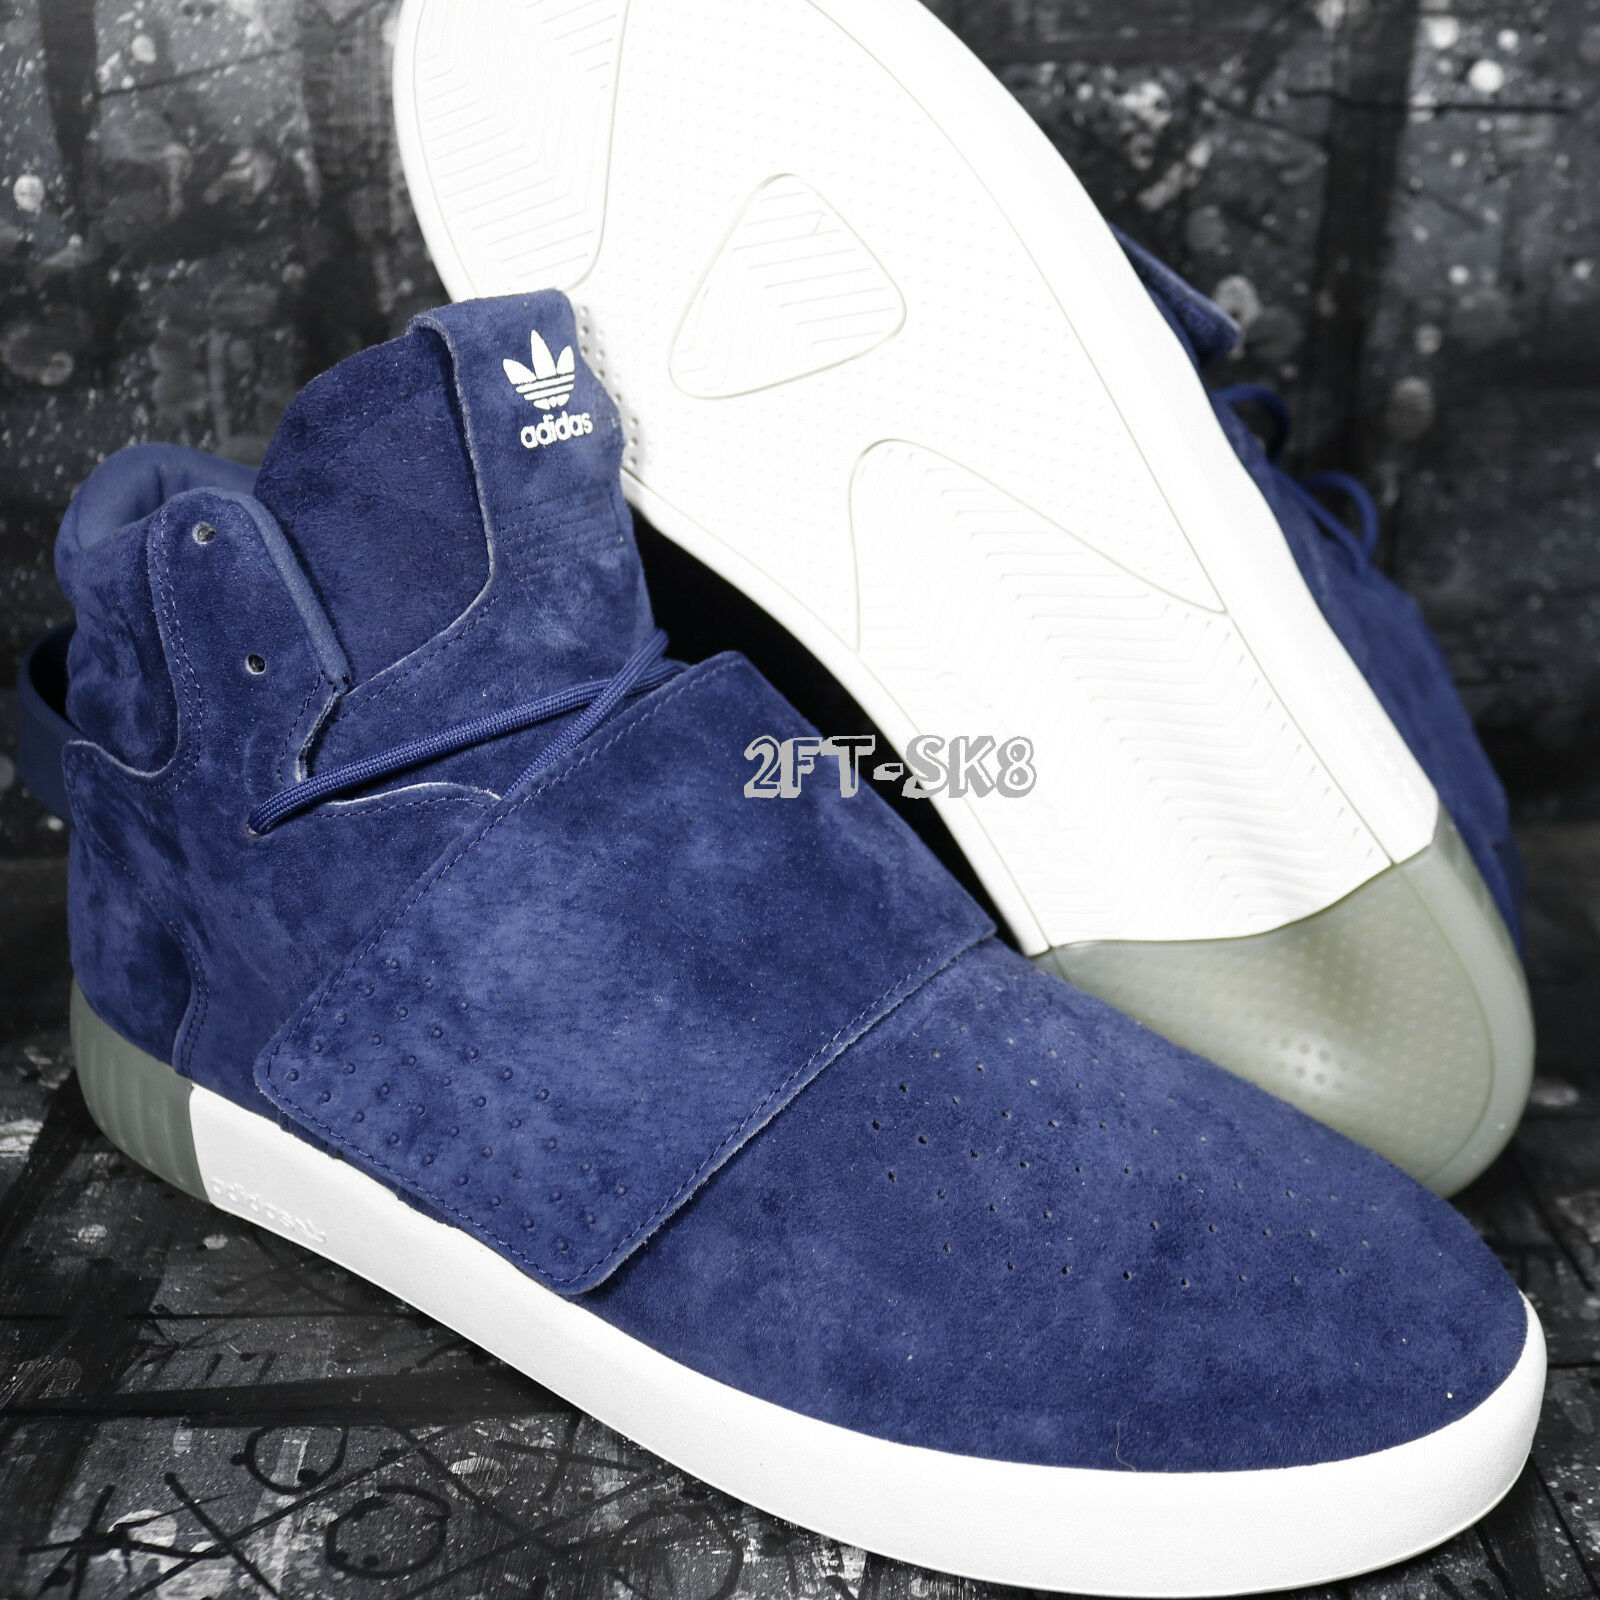 ADIDAS TUBULAR INVADER STRAP DARK blueE MENS SIZE 13 HIGH TOP SNEAKER  S91100.452